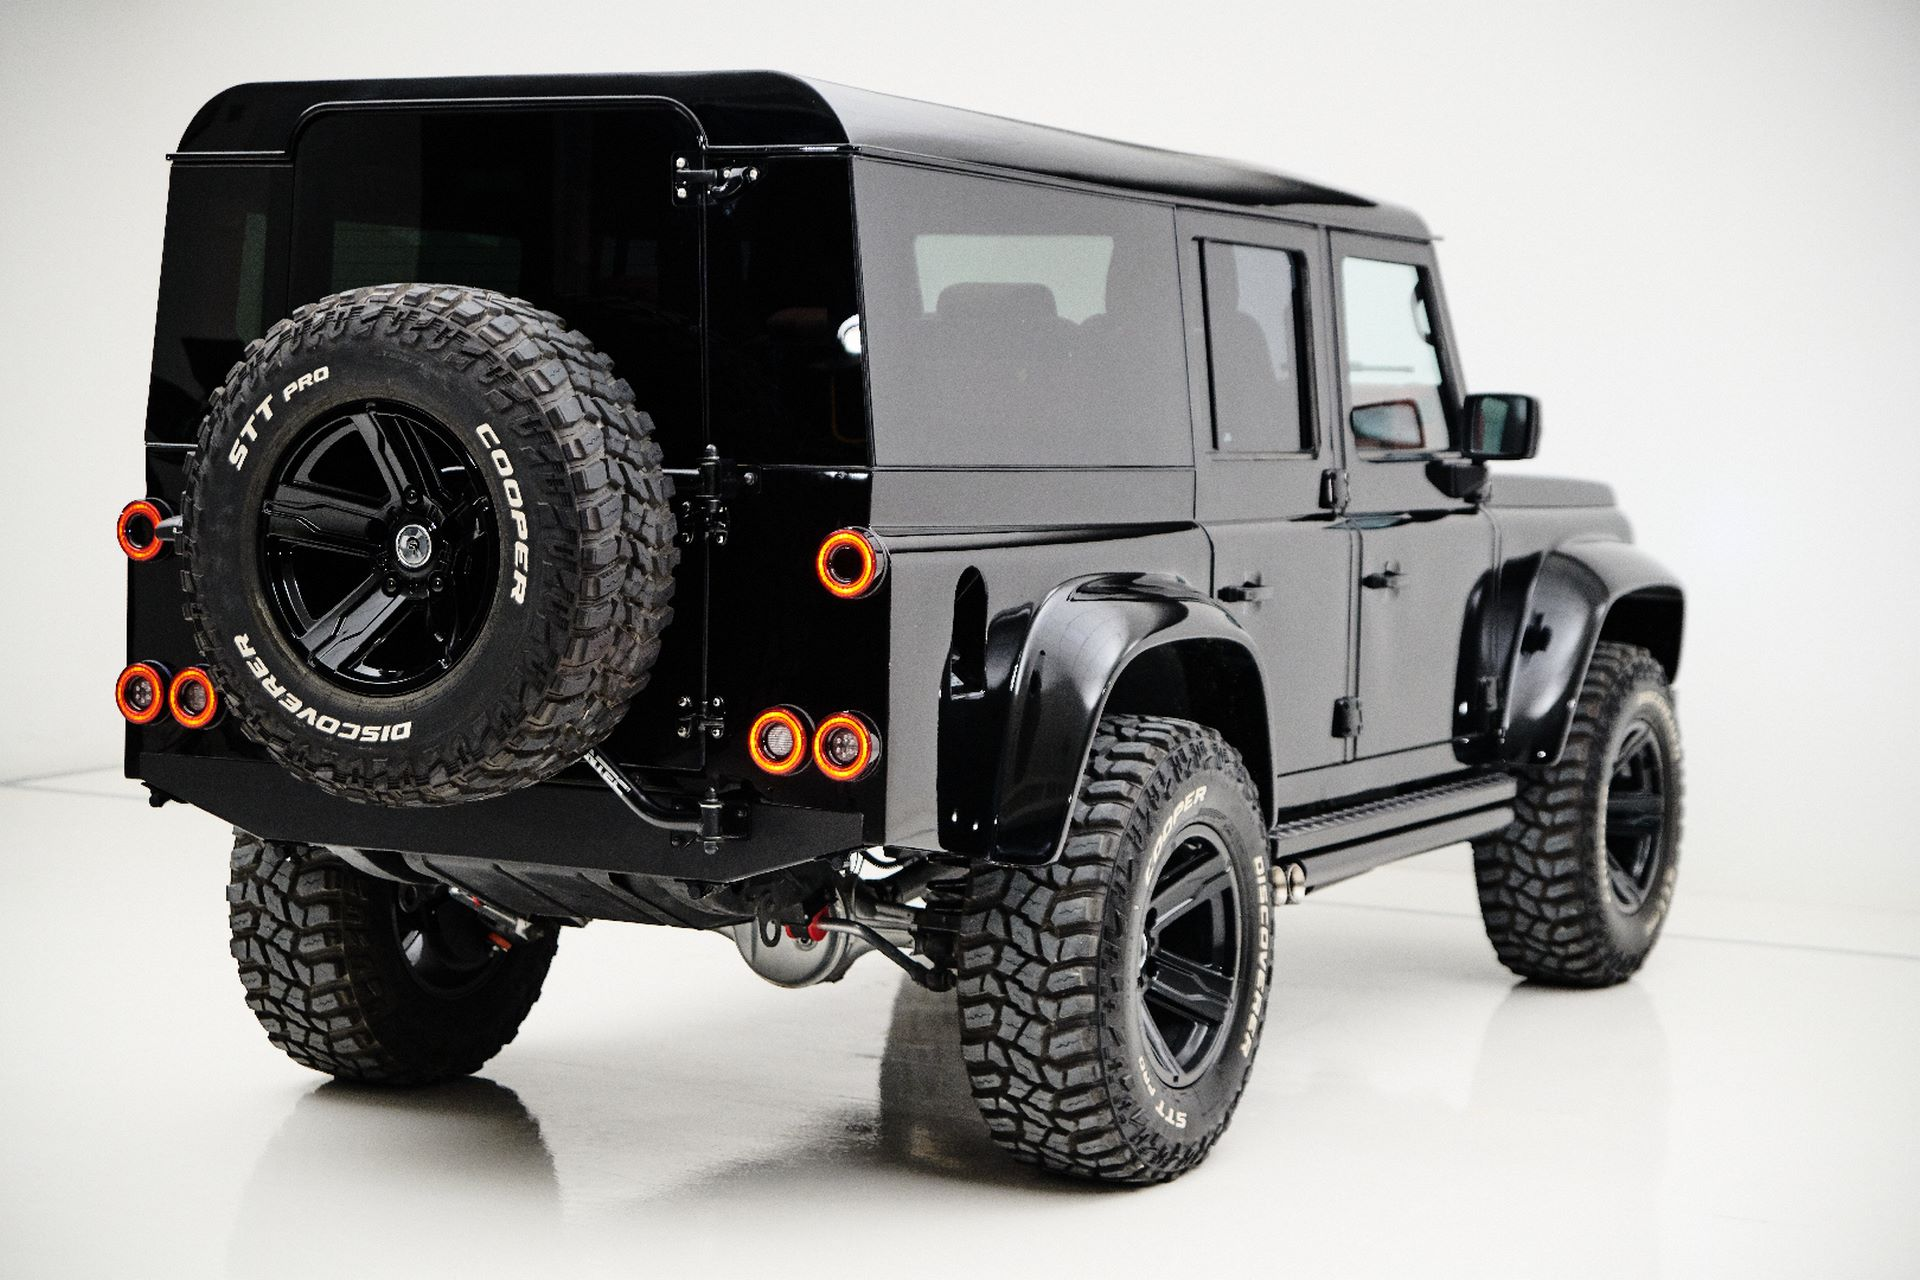 Porsche-911-964-Turbo-and-Land-Rover-Defender-by-Ares-Design-8